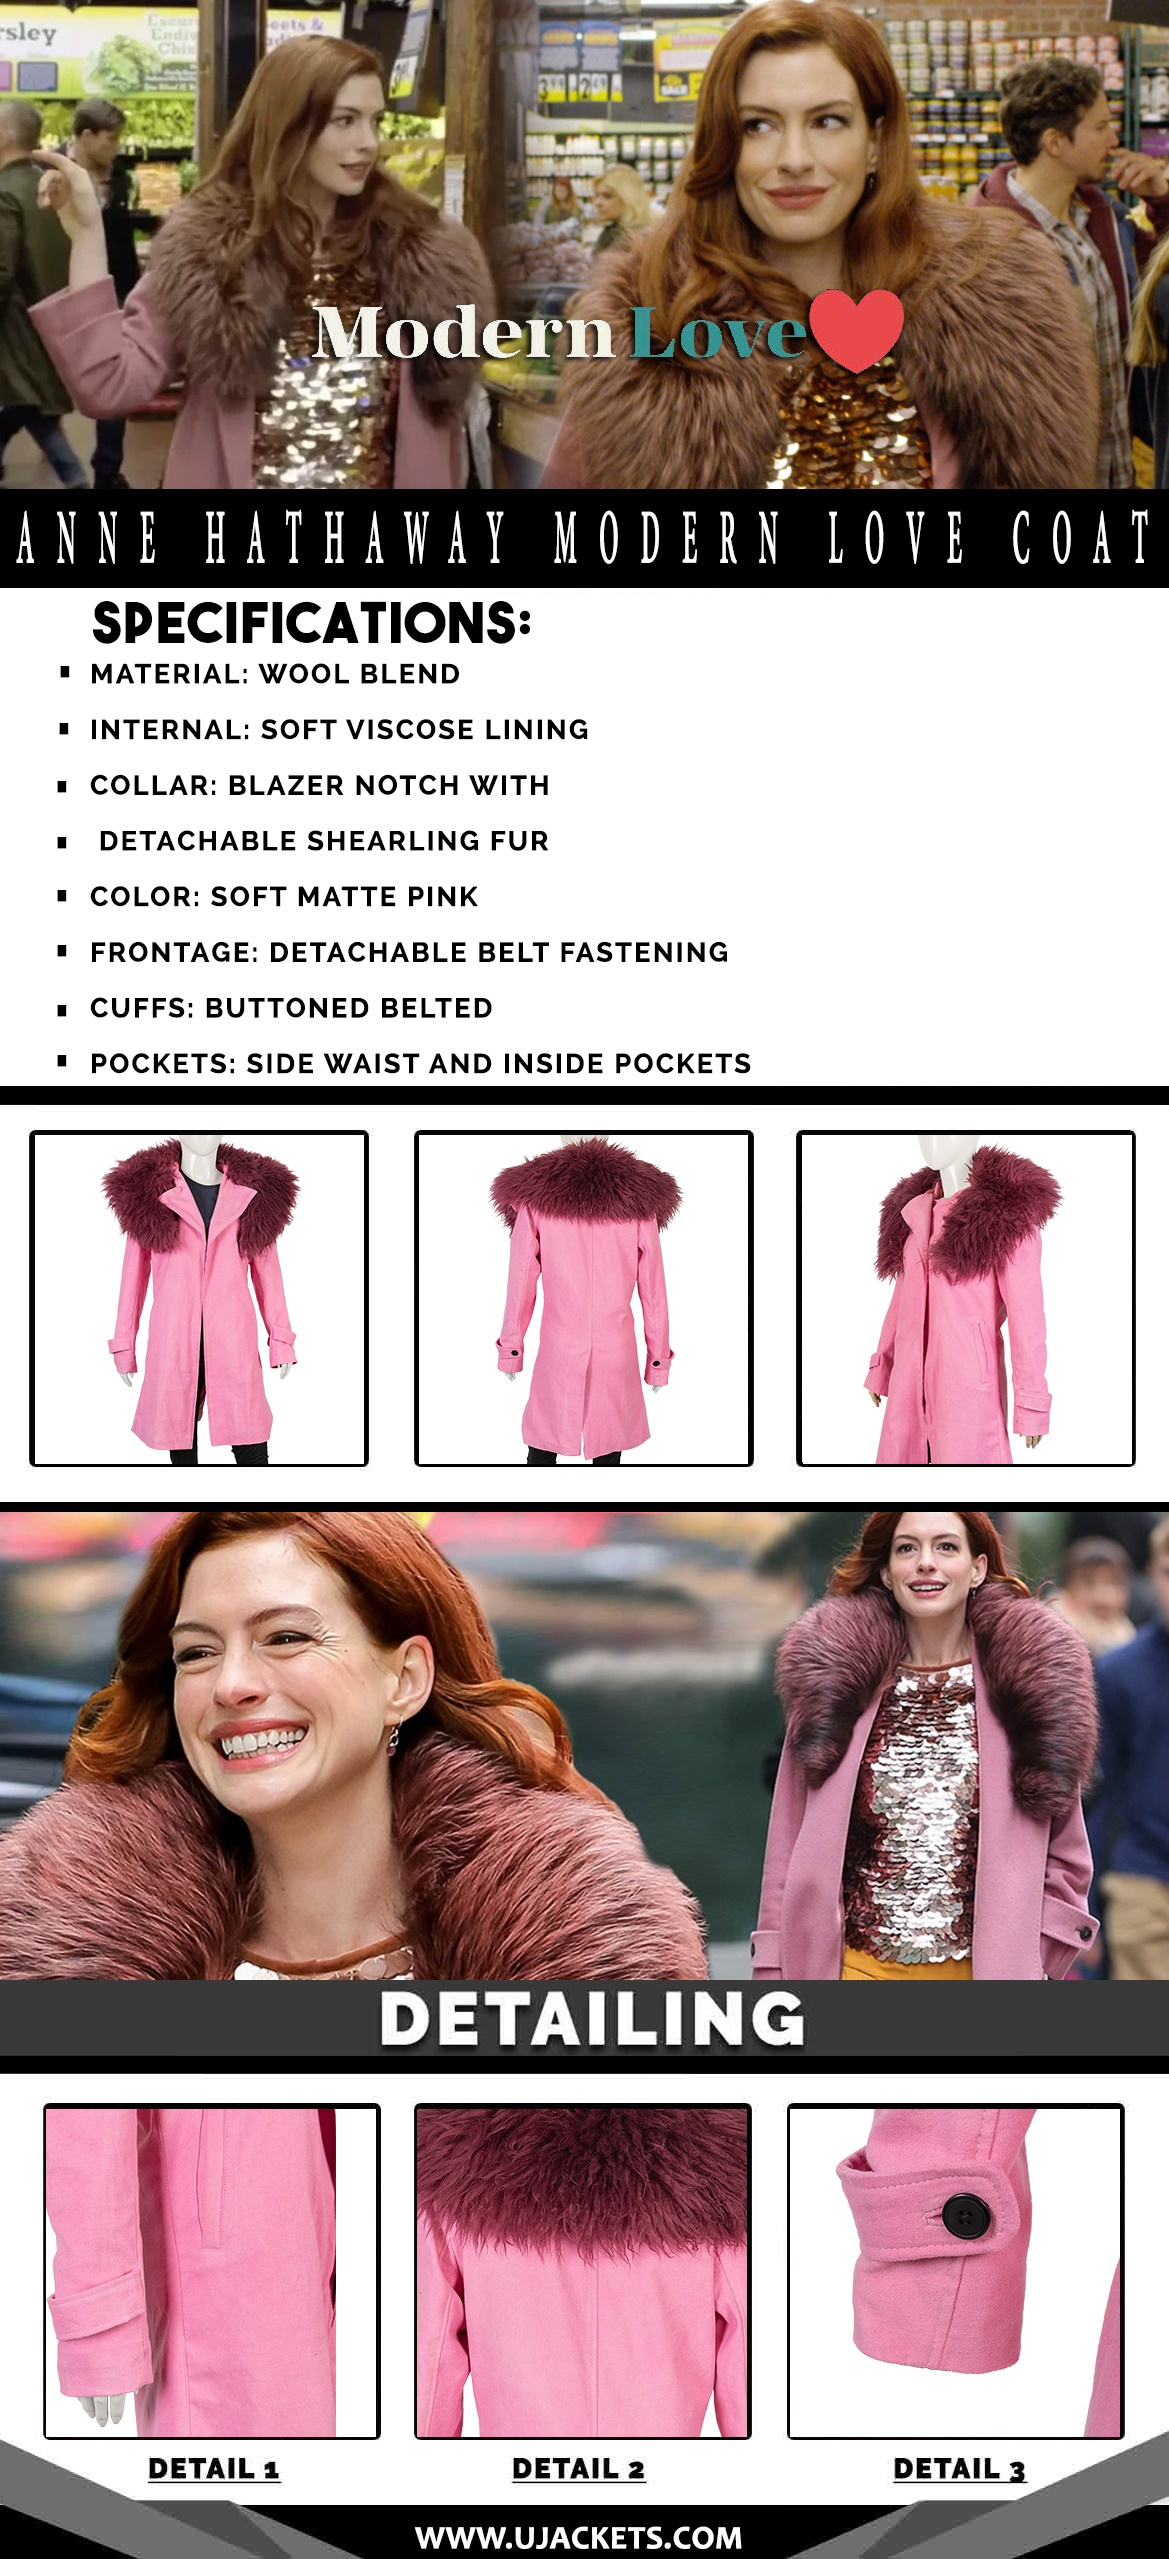 infographic-UAnne-Hathaway-Modern-Love-Coat (1) (2)